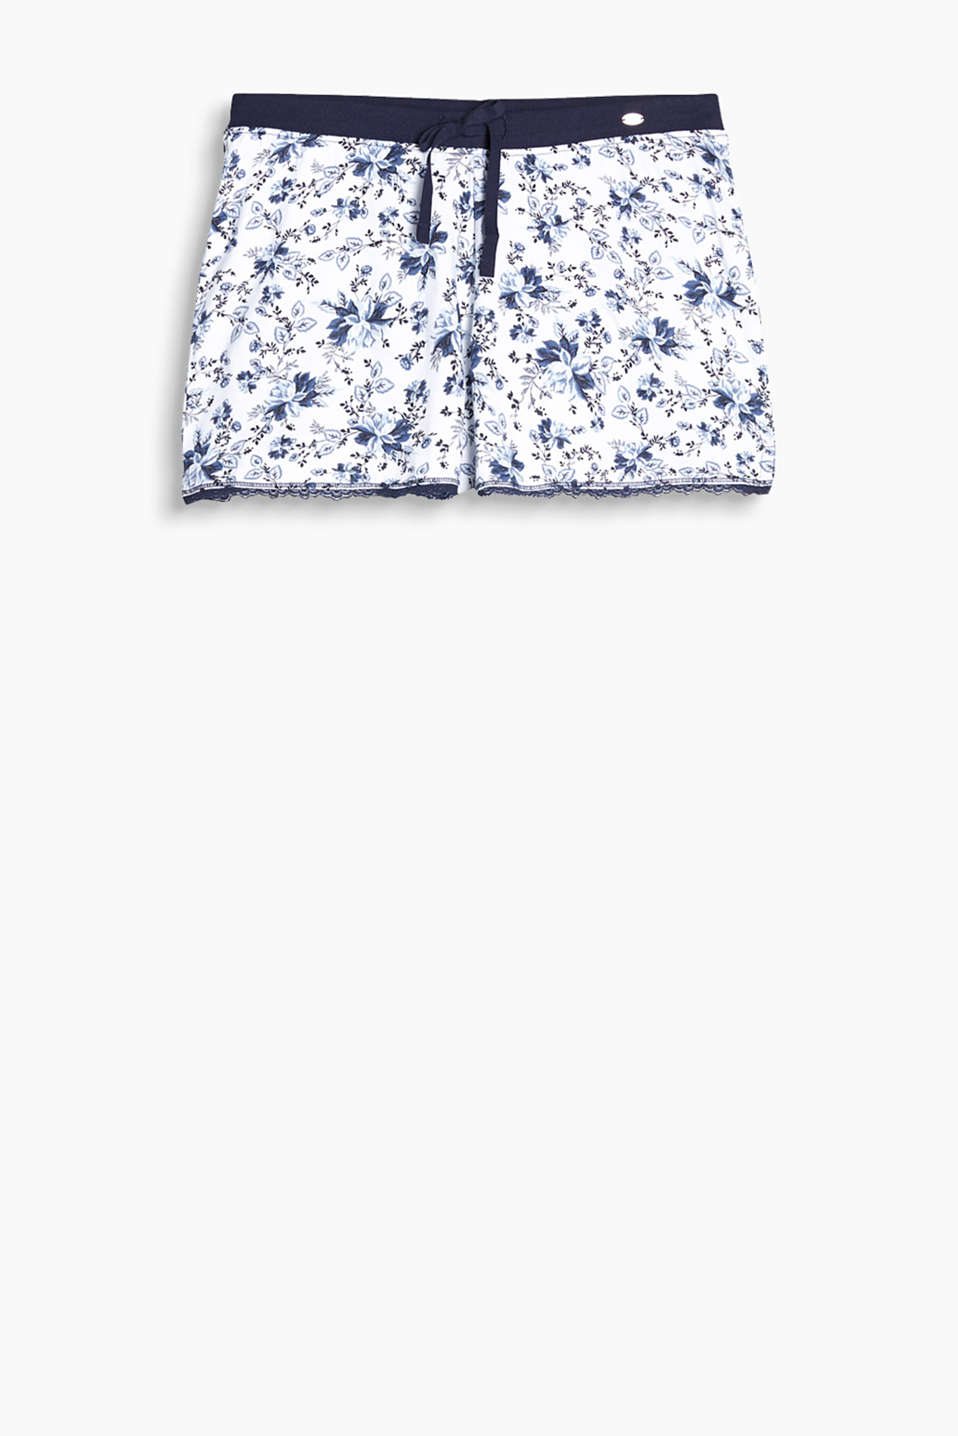 Pyjama shorts in 100% cotton with an all-over floral print